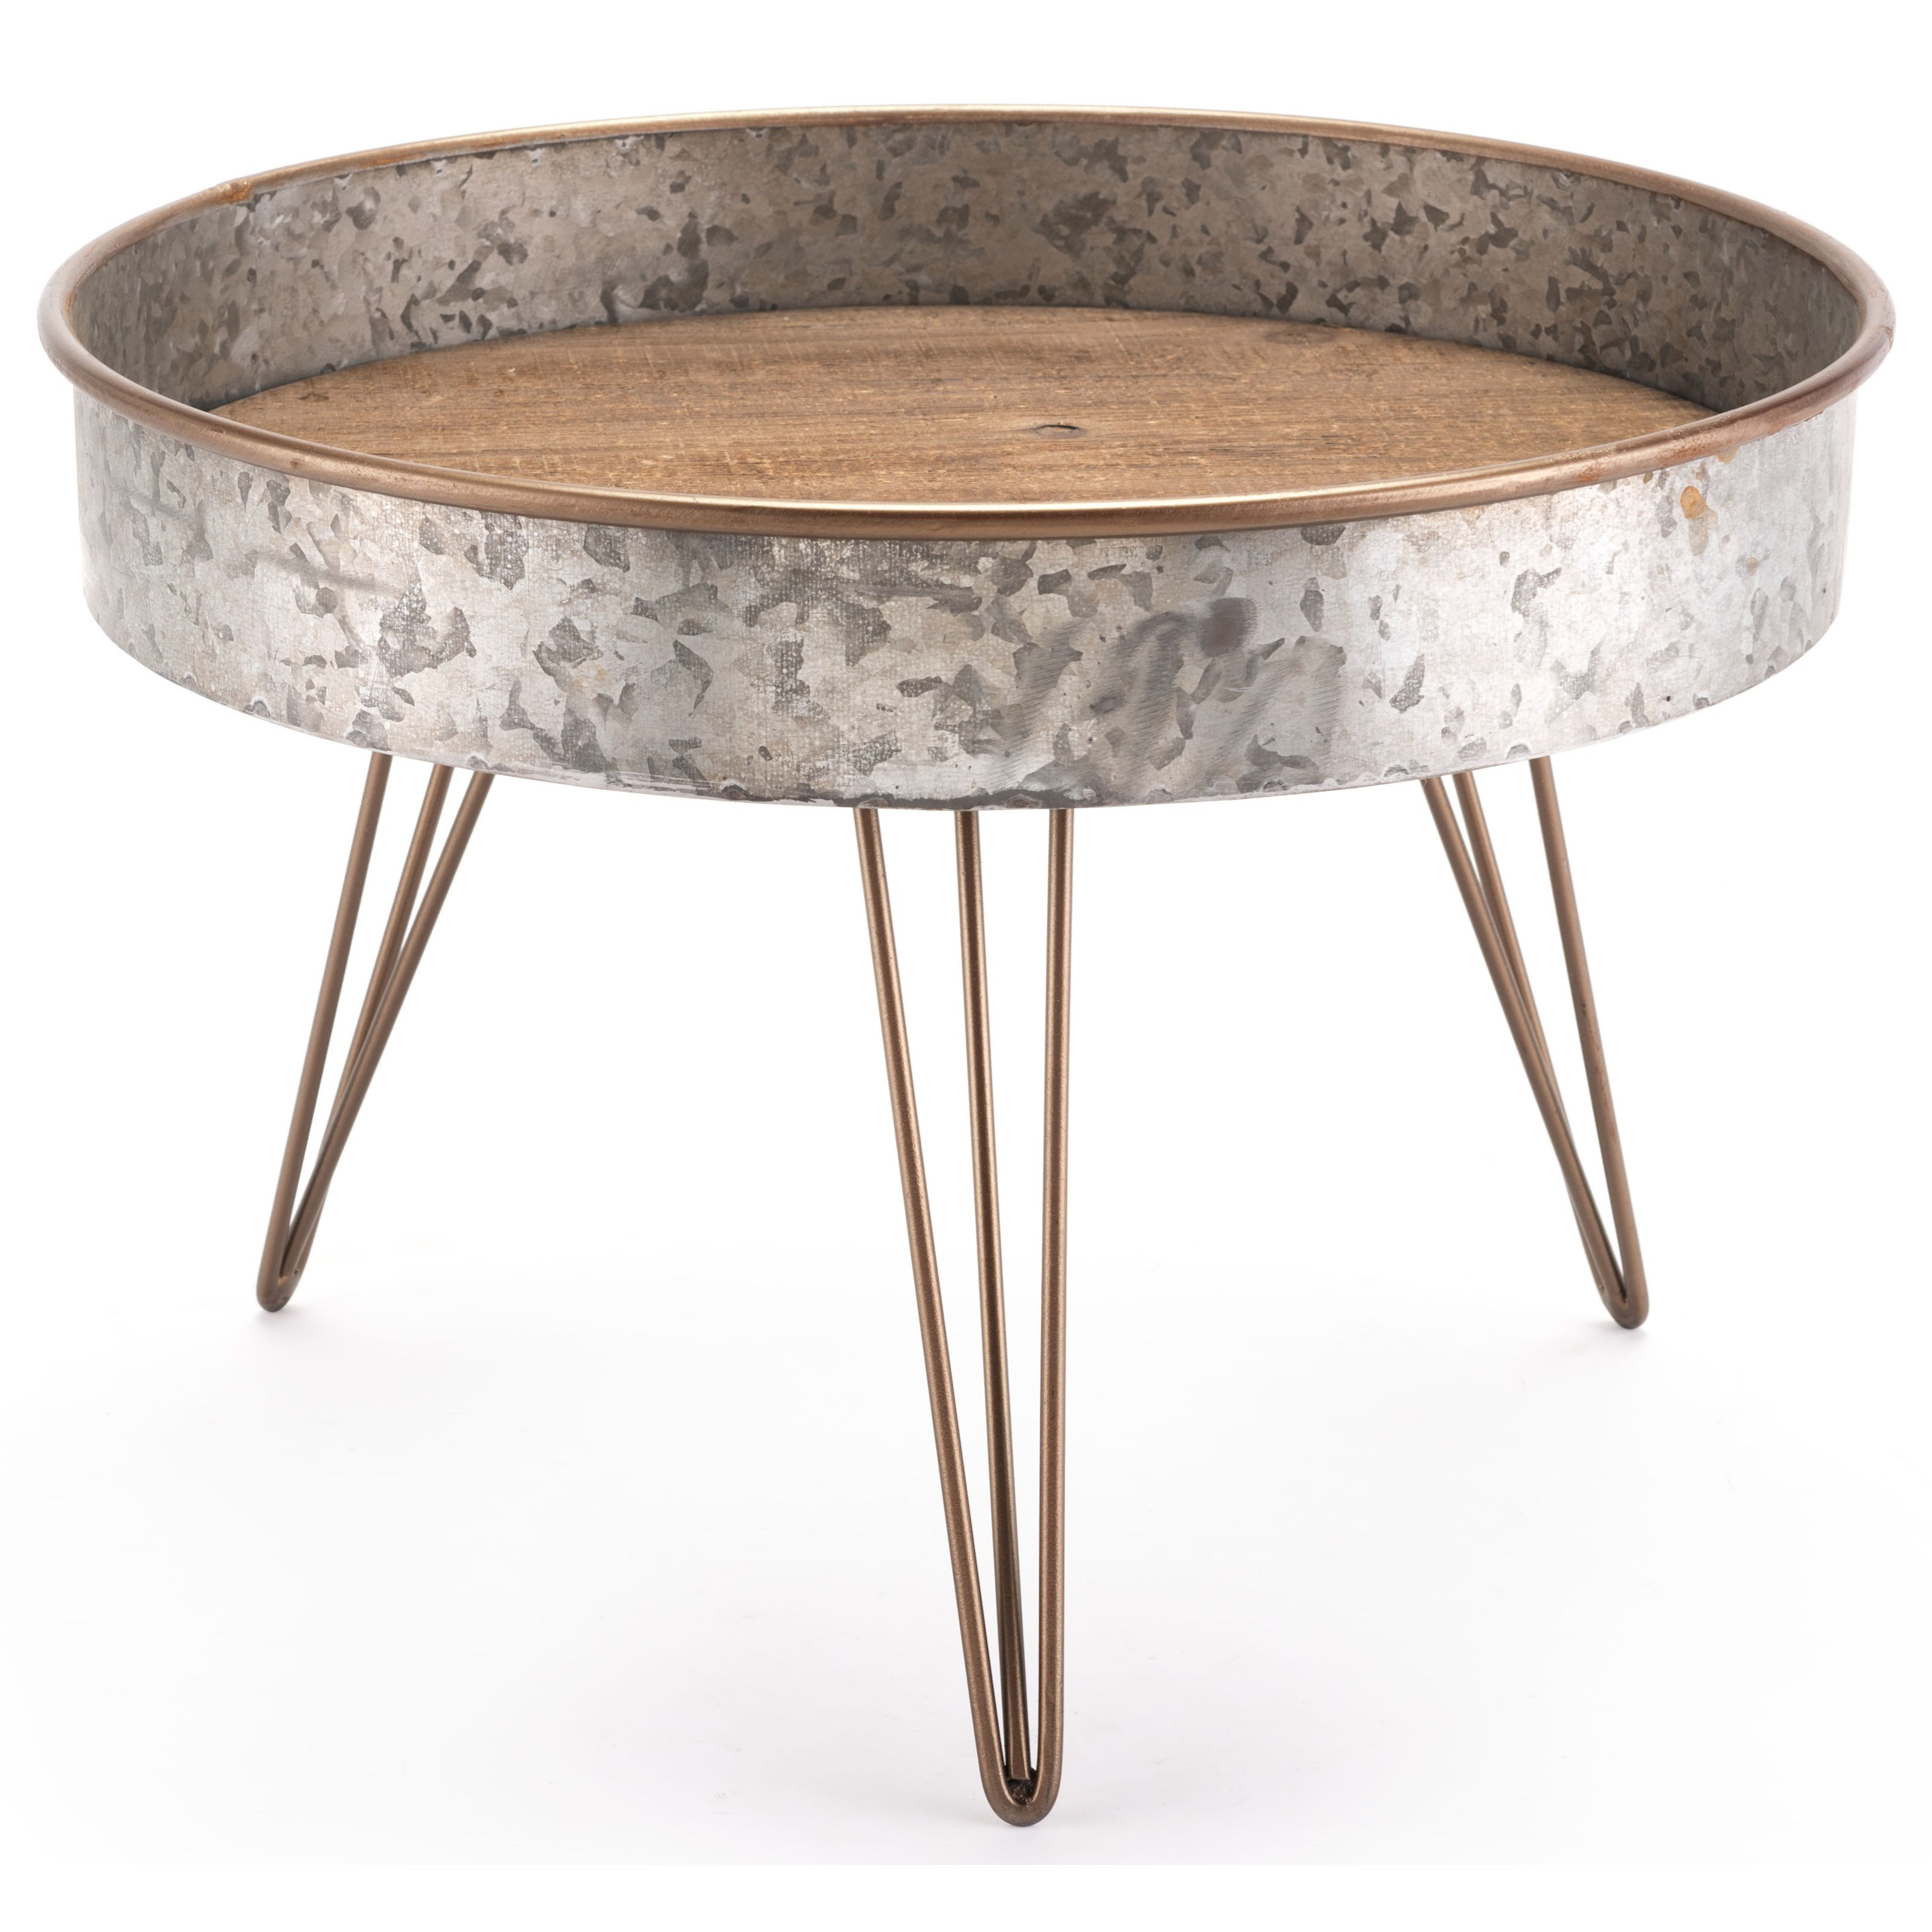 Accent Tables Zinc Round Table Large by Zuo at Nassau Furniture and Mattress